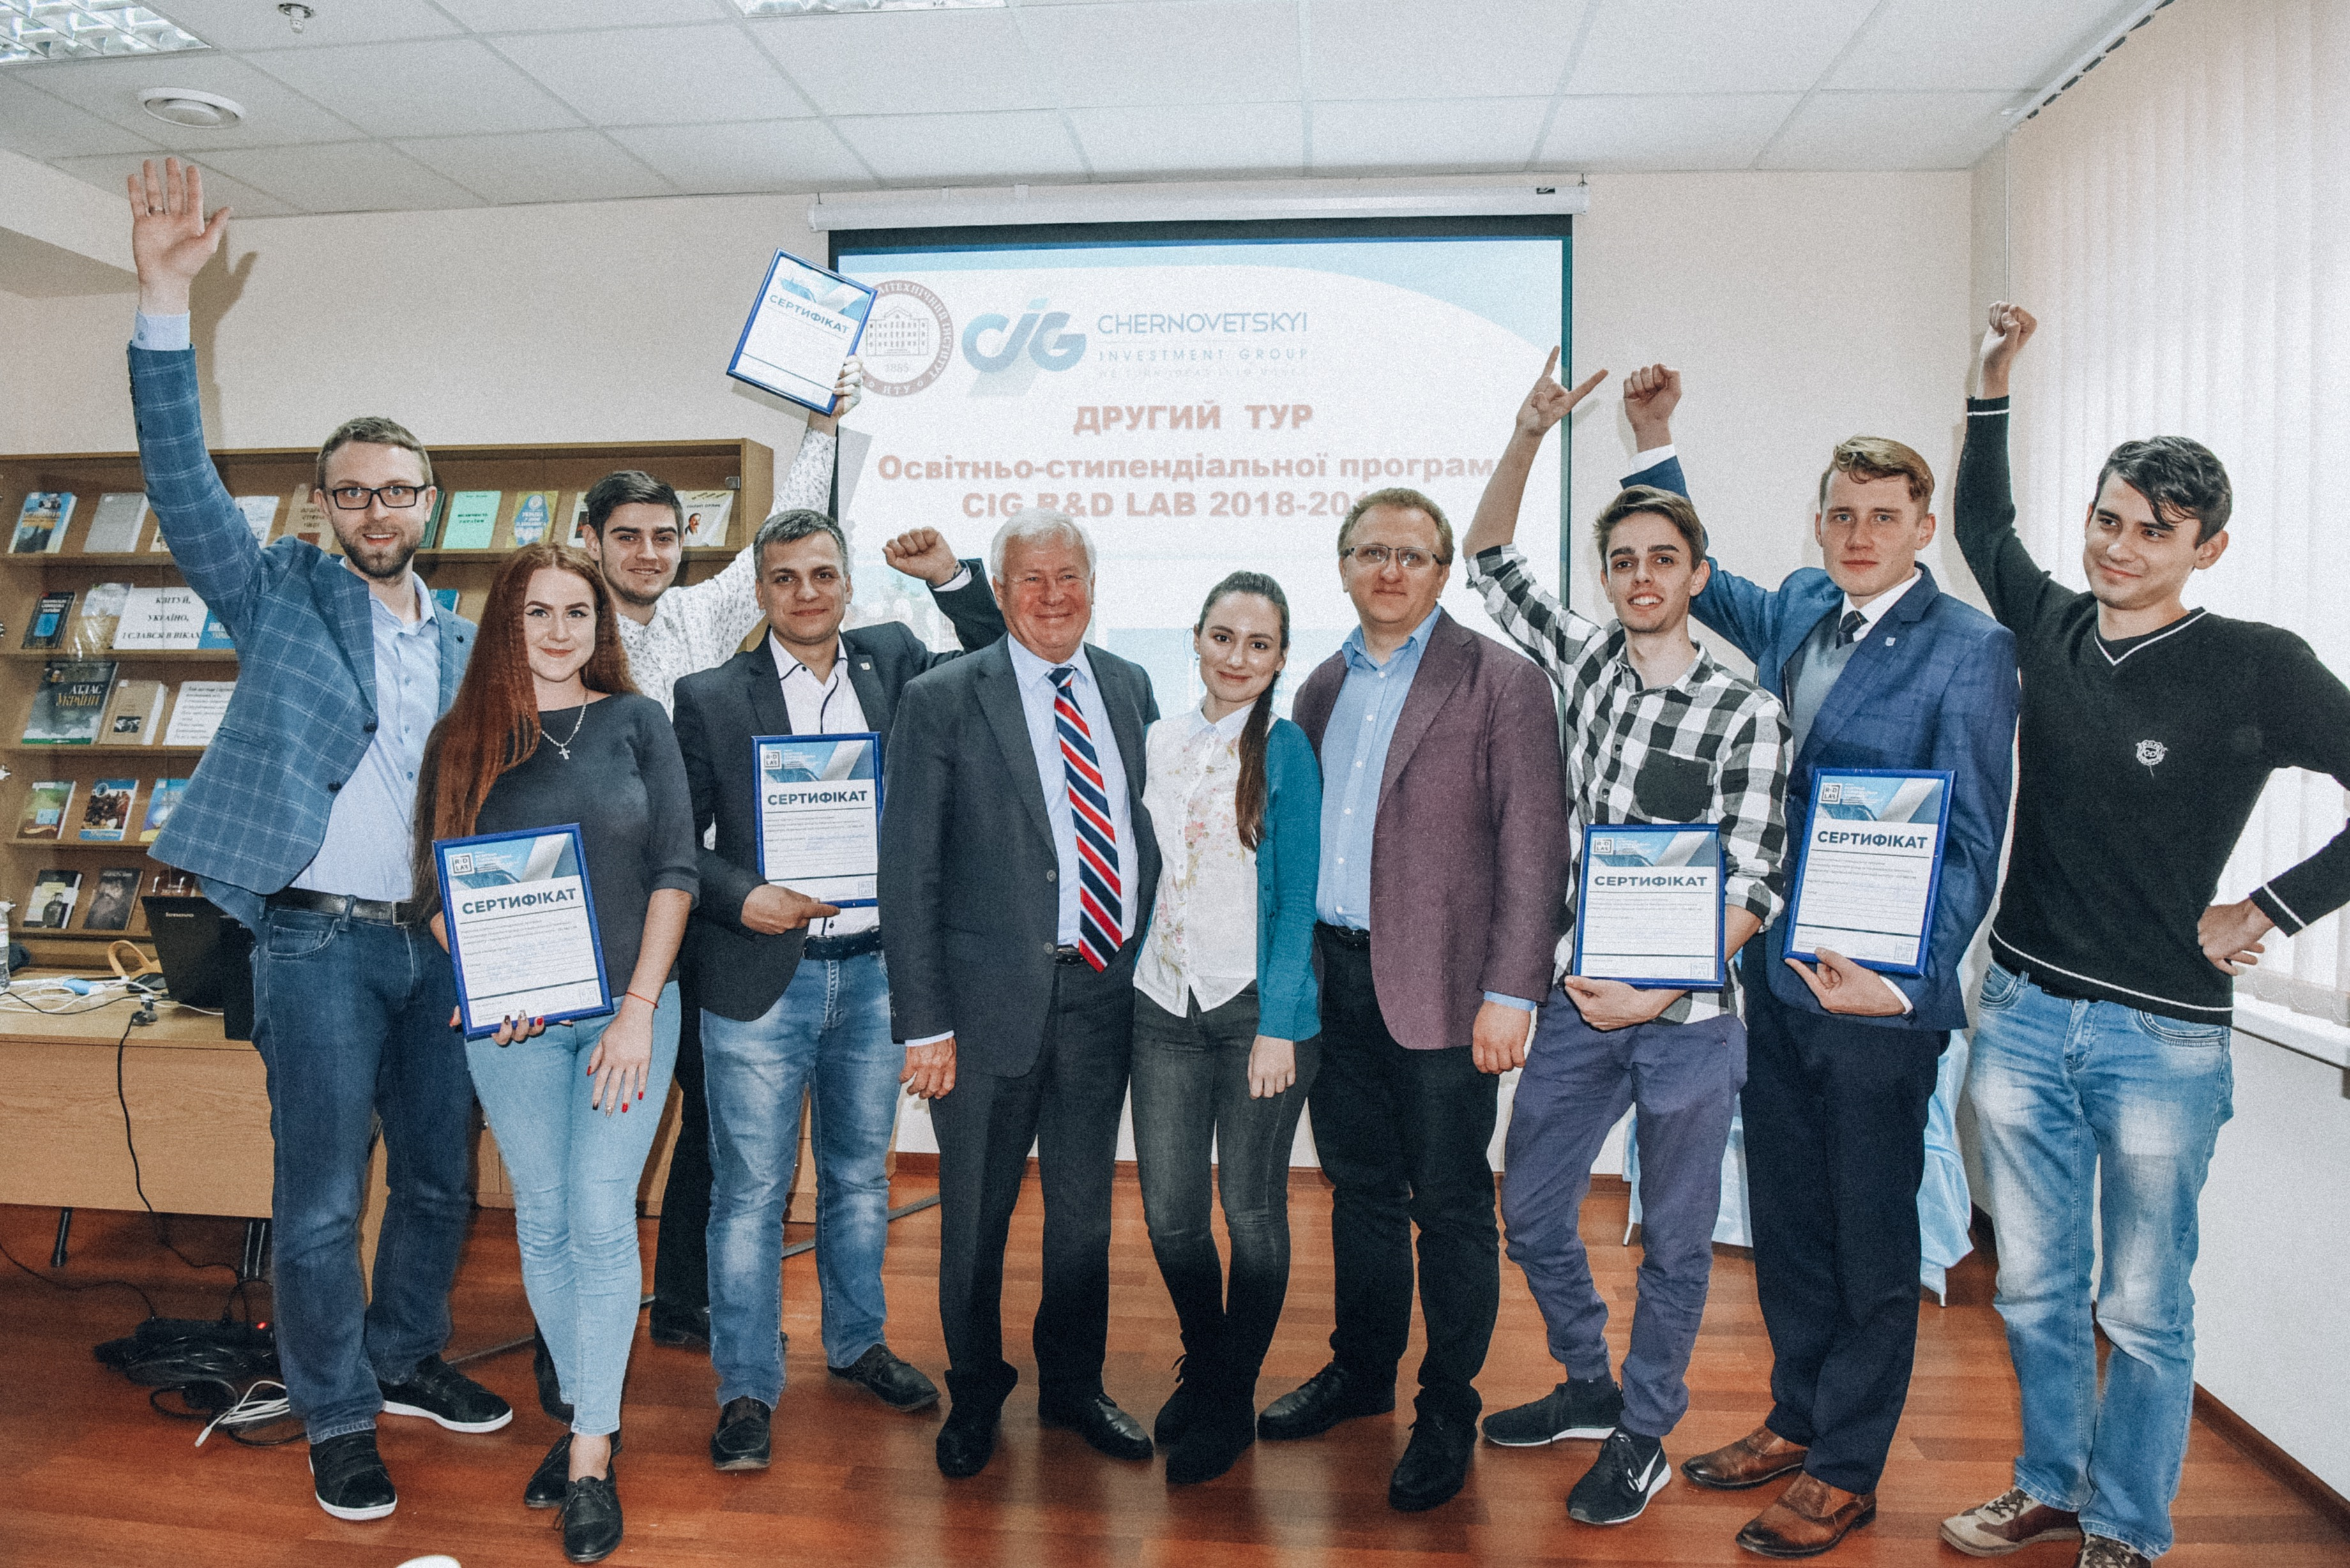 "Five participating teams of CIG R&D LAB educational scholarship program in 2018-2019 were announced in NTU ""Kharkiv Polytechnic Institute""."